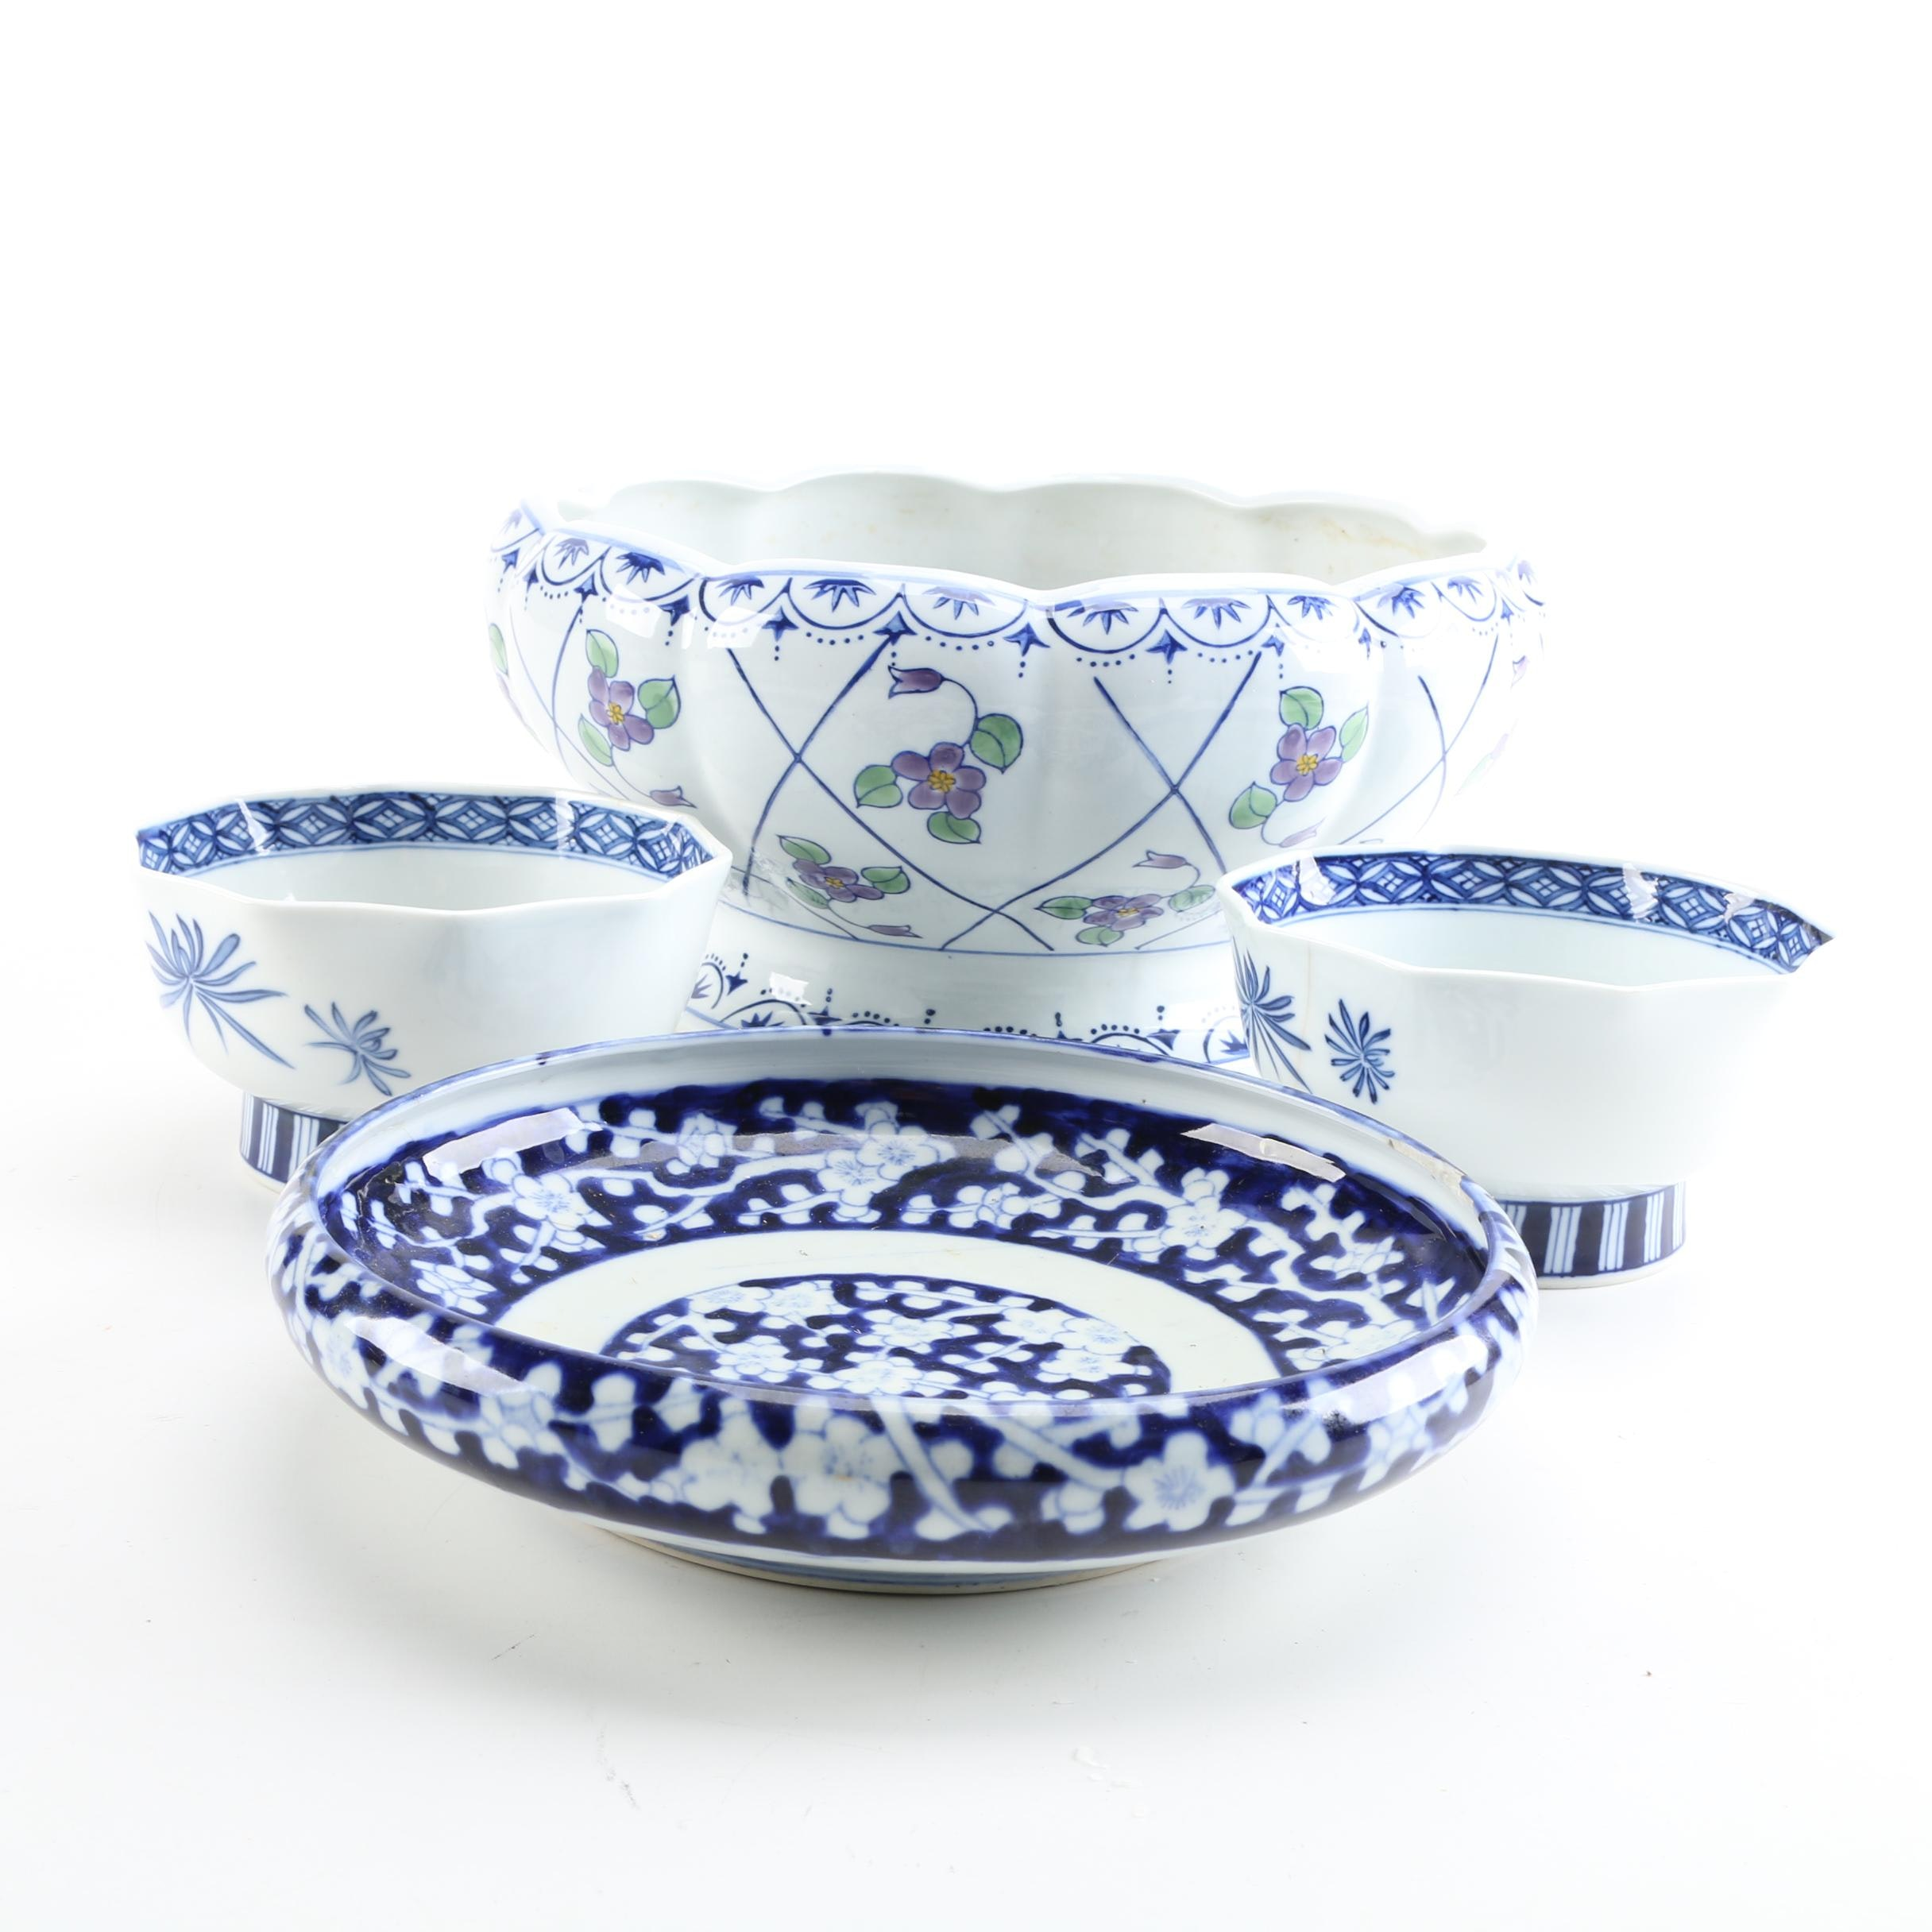 East Asian Blue and White Imported Tableware